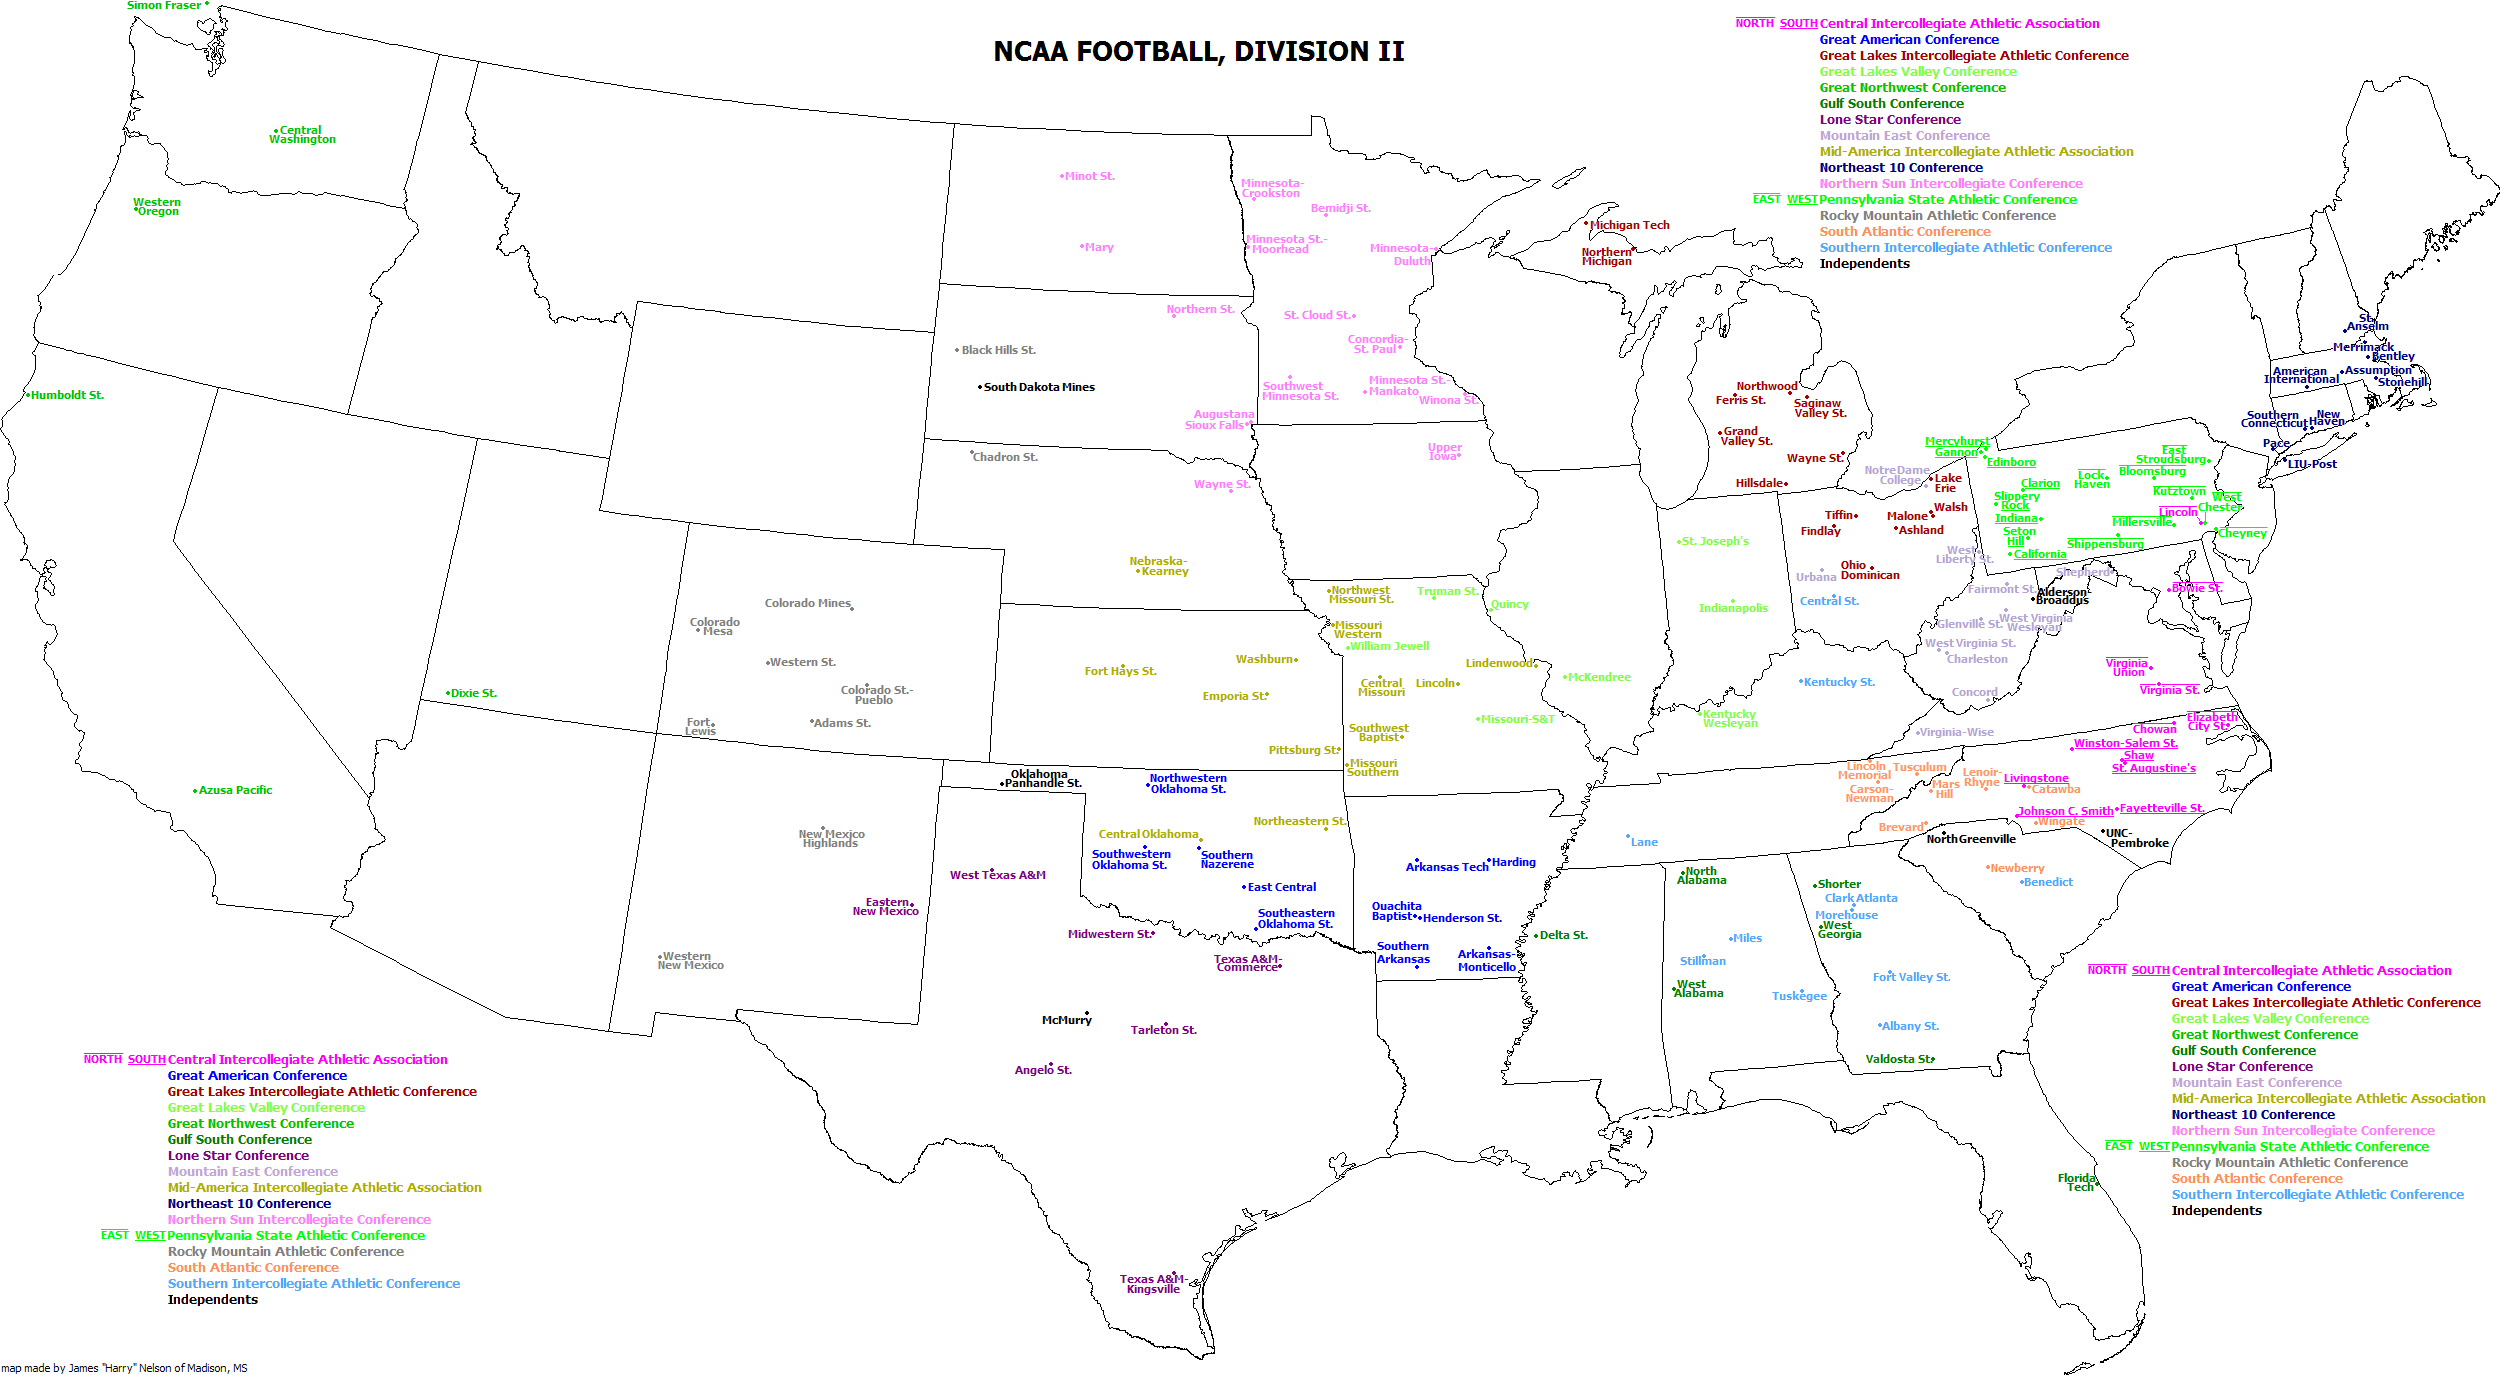 Florida Colleges Map.List Of Ncaa Division Ii Football Programs Wikipedia